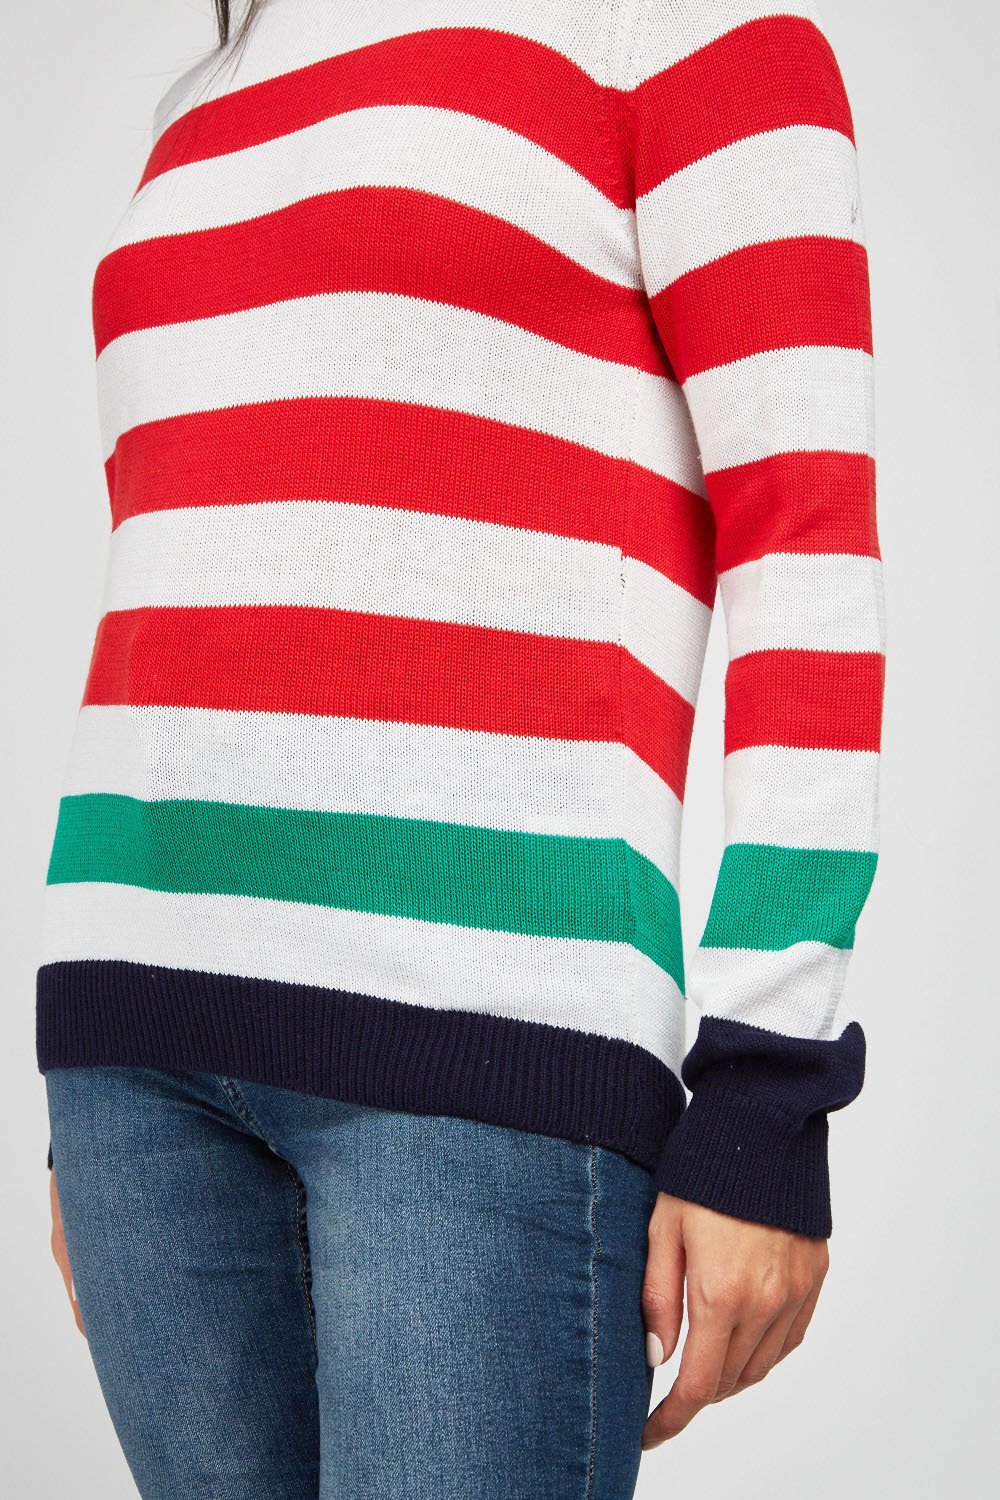 Multi Stripe Knit Jumper Red Green Or Black Yellow Just 163 5